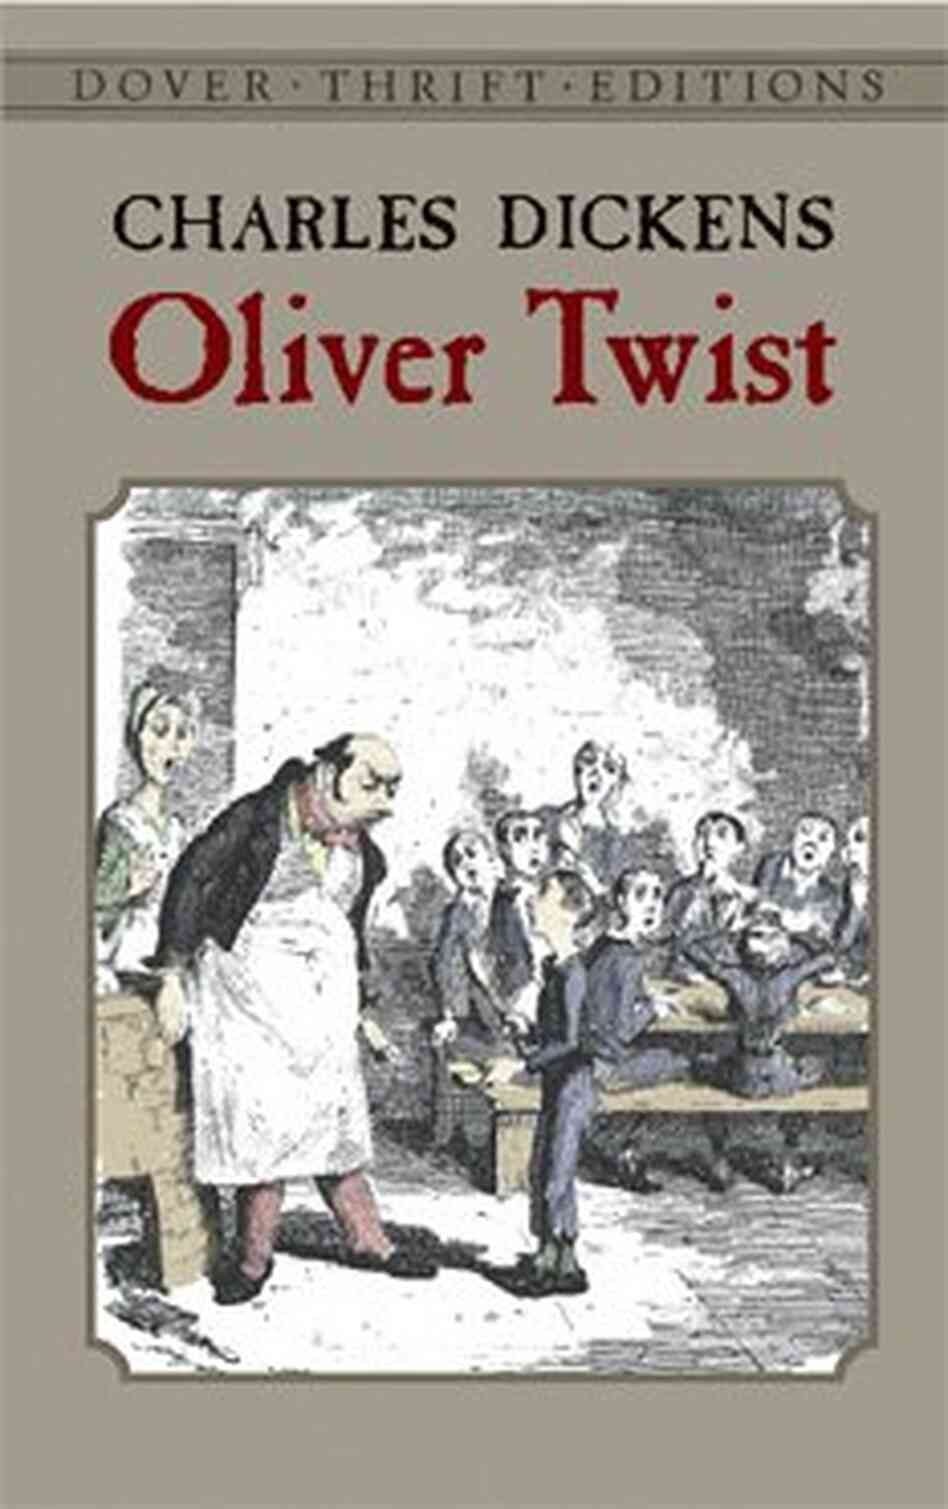 themes oliver twist by charles dickens Oliver twist charles dickens buy  twist book summary table of contents  all subjects book summary about oliver twist  of oliver twist  themes of oliver .